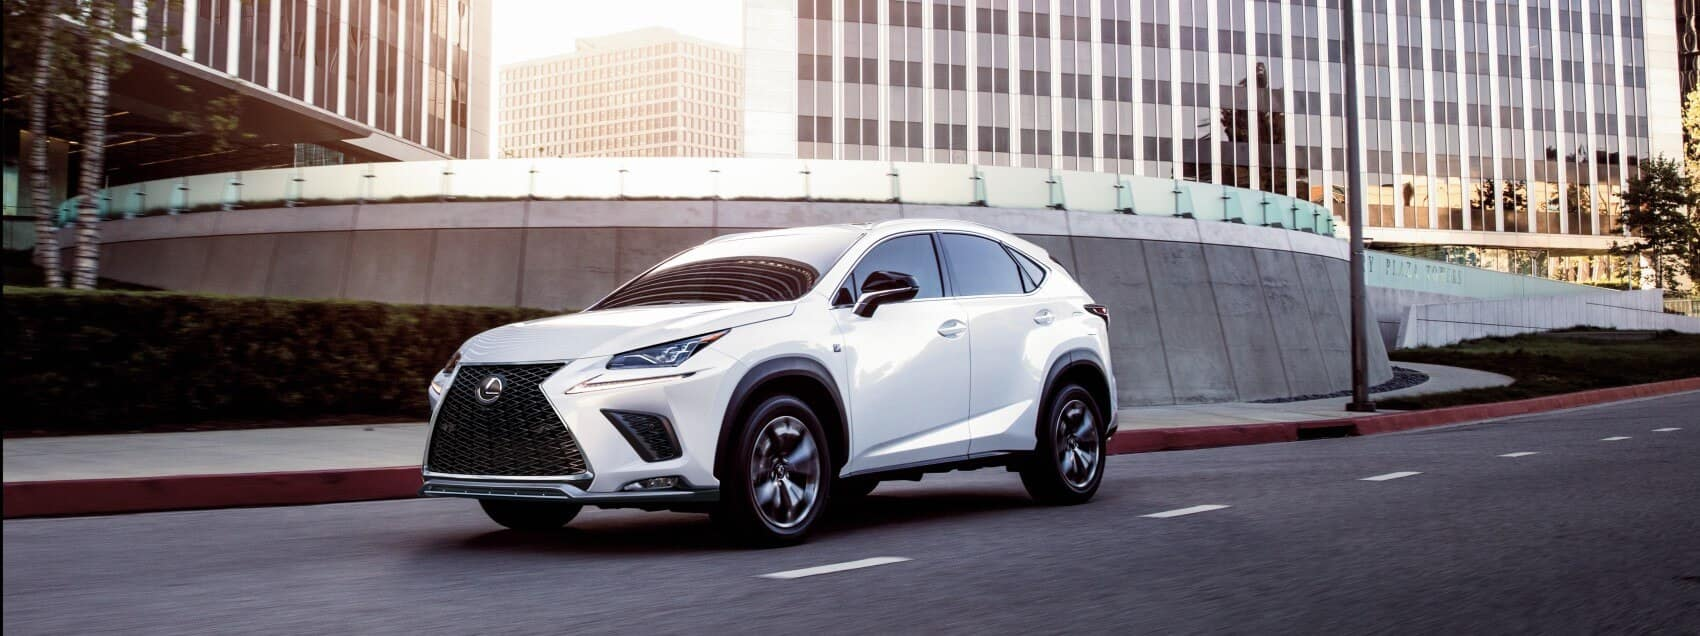 Used Lexus for Sale in Larchmont, NY